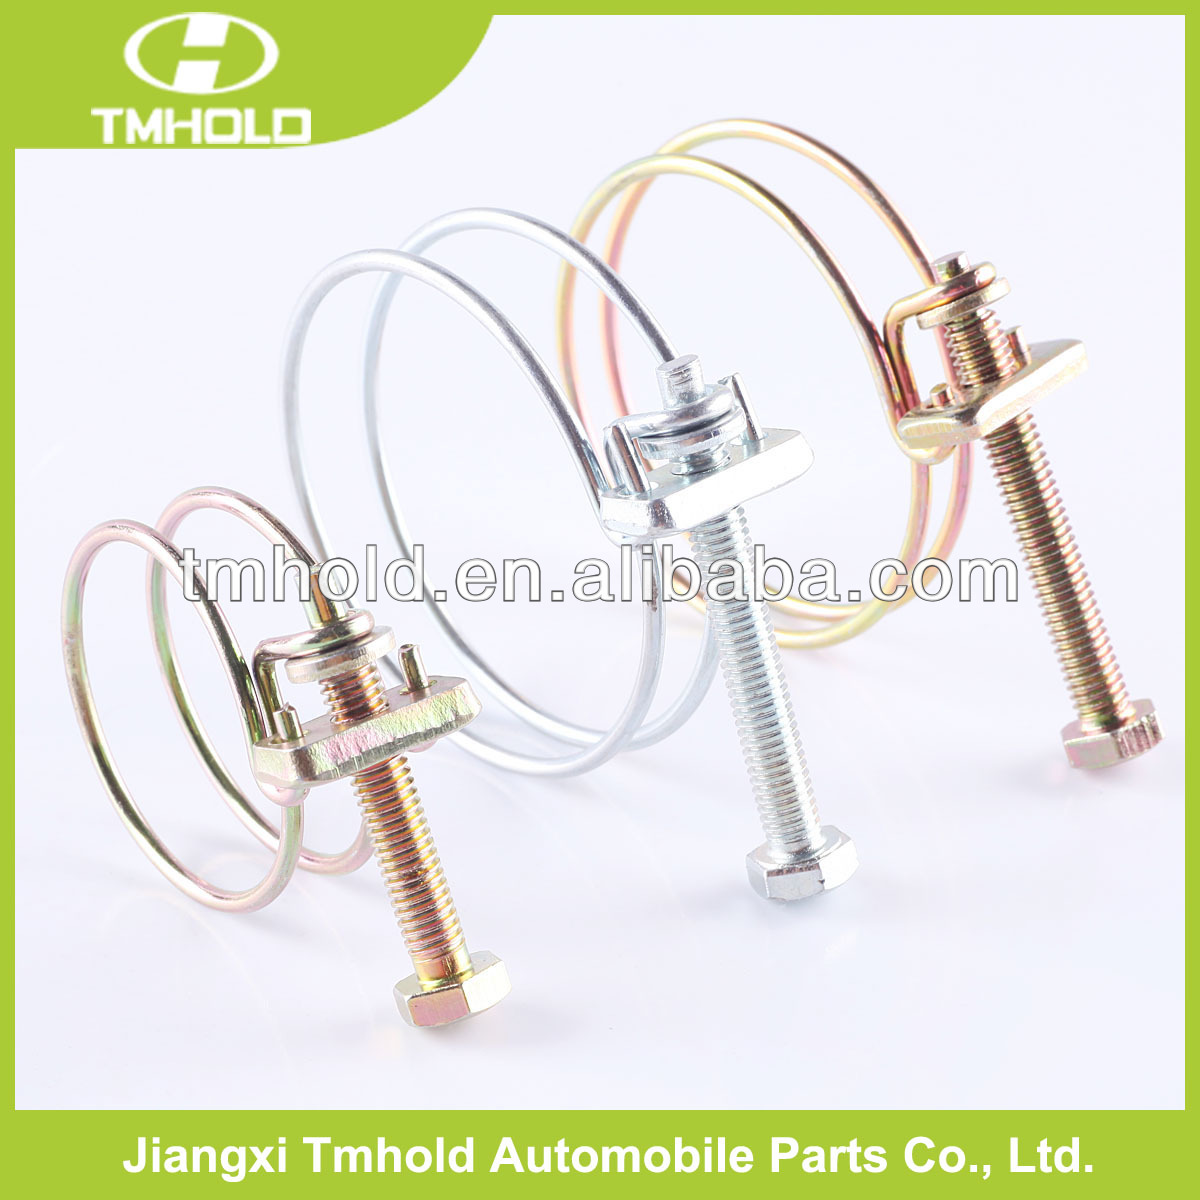 small spring rope double wires cable clamps for auto pipes